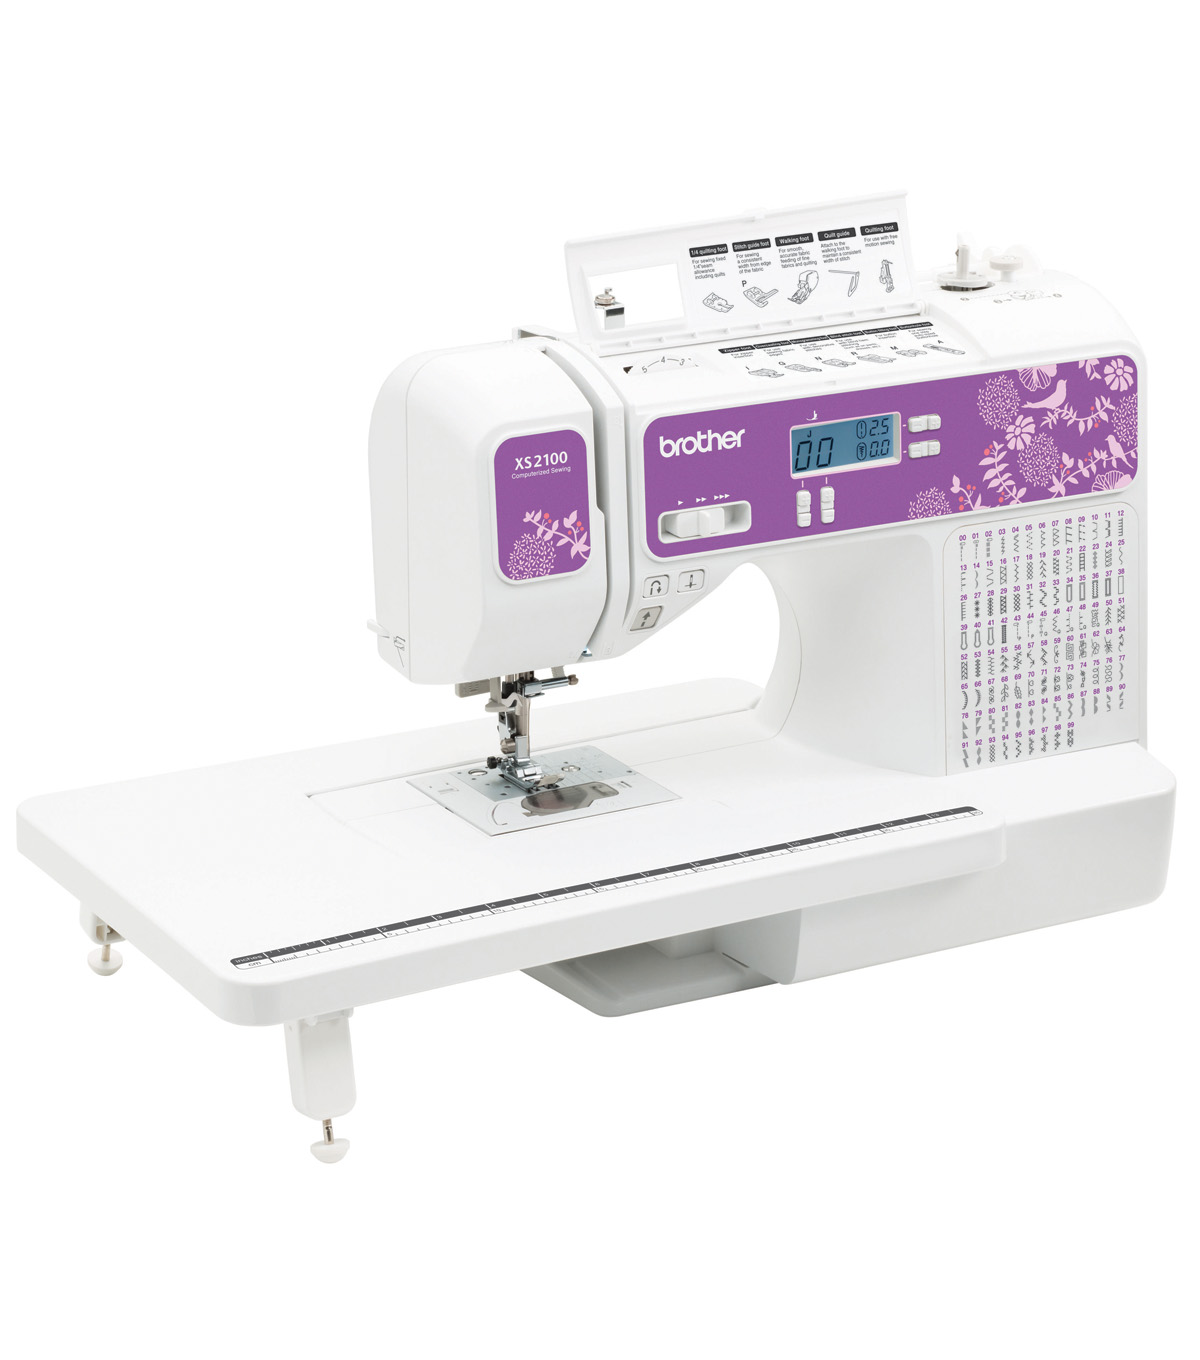 Brother XS2100 100-Stitch Computerized Sewing Machine